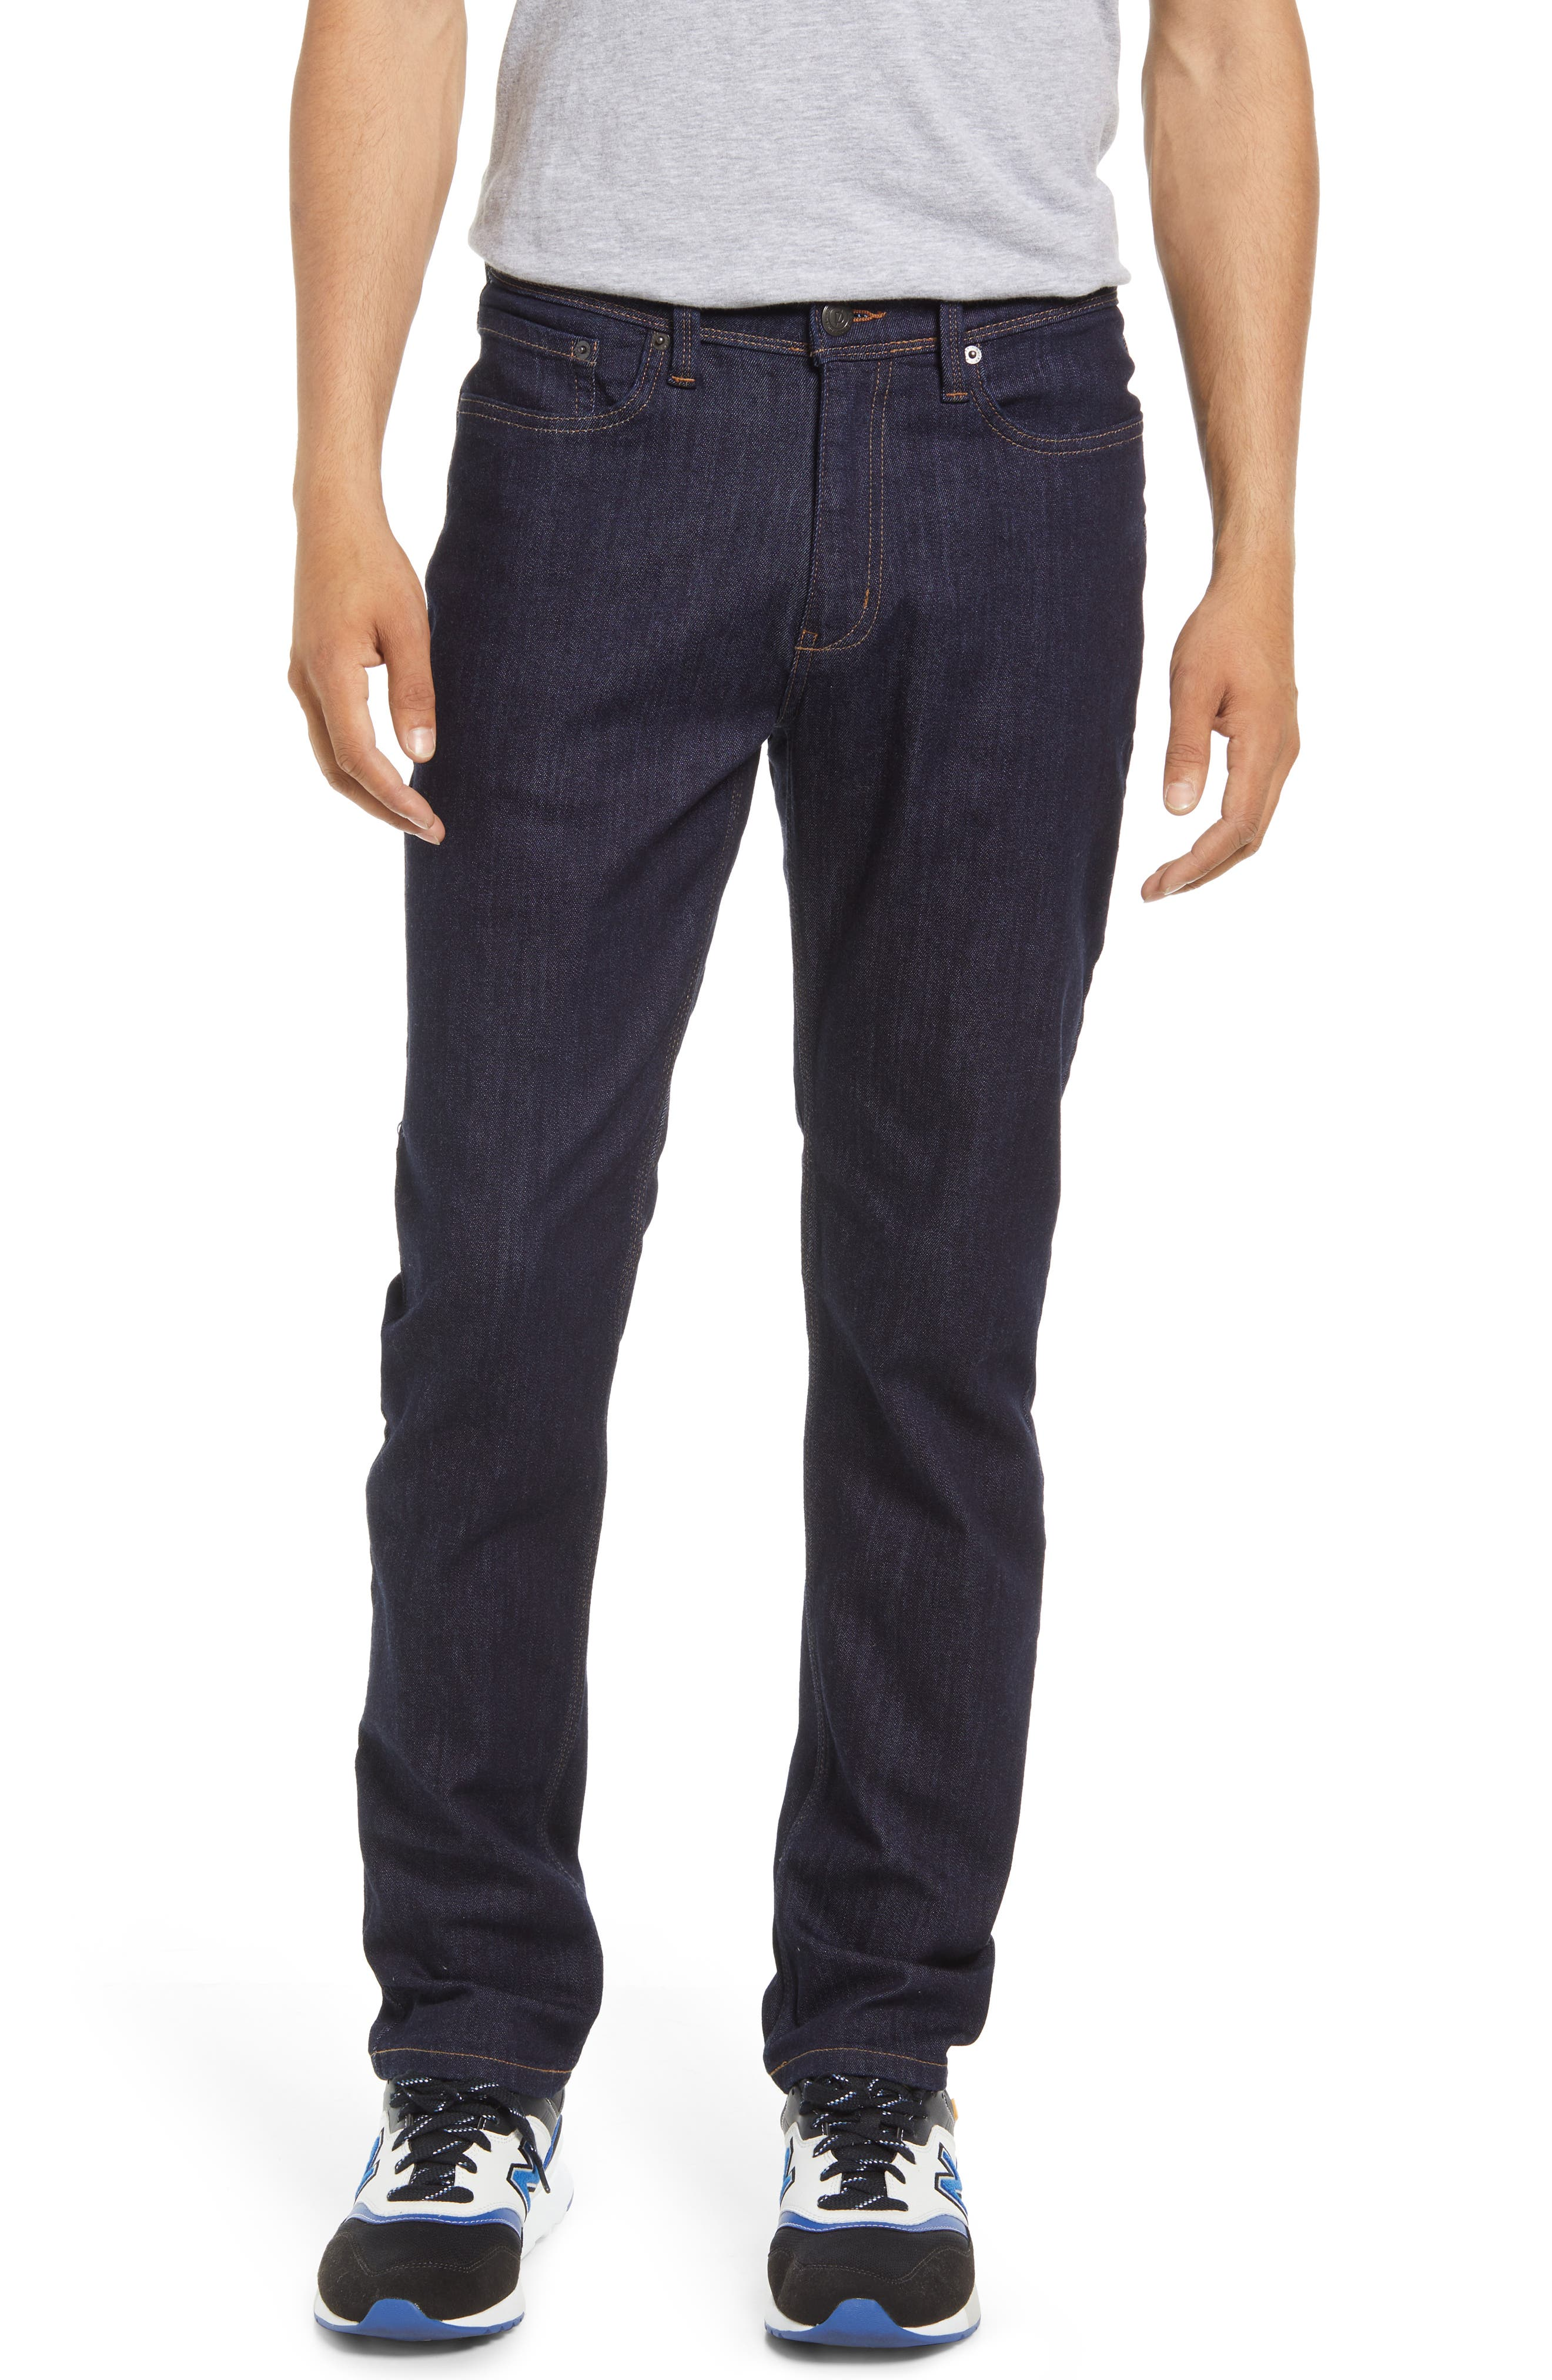 Stay Dry Slim Water Repellent Organic Cotton Blend Straight Leg Jeans